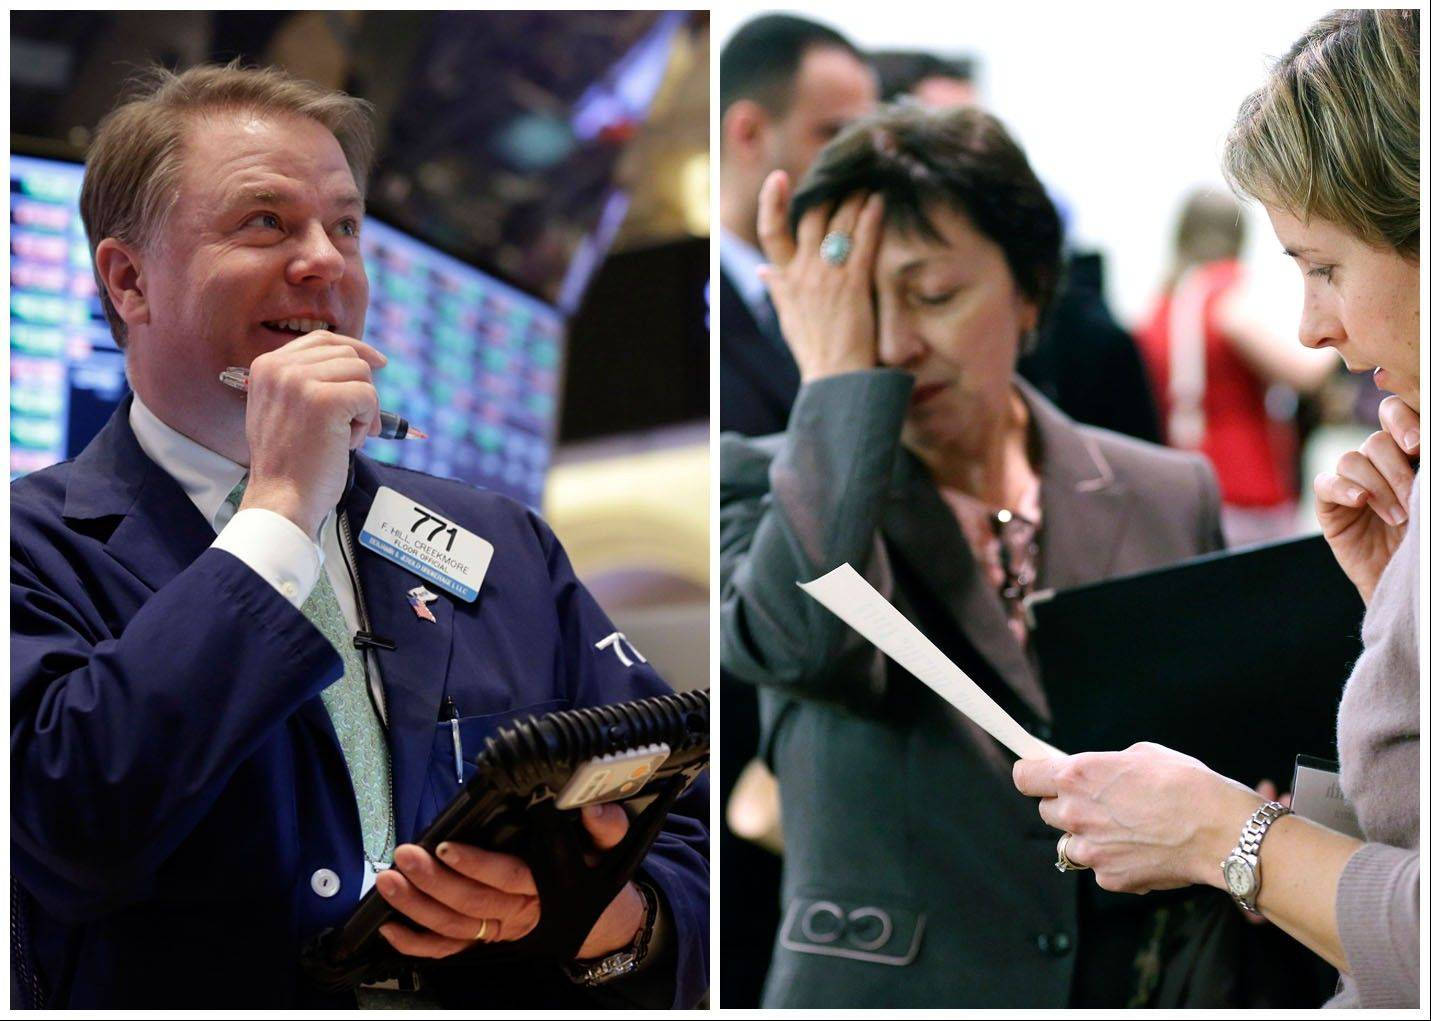 Trader F. Hill Creekmore, left, smiles as he works on the floor of the New York Stock Exchange, and Ann Oganesian, right, pauses as she speaks about job opportunities during a job fair in Boston. The economy is being slowed by a tight job market, scant pay raises and weak business investment. Yet corporate profits are reaching record highs and fueling record stock prices.